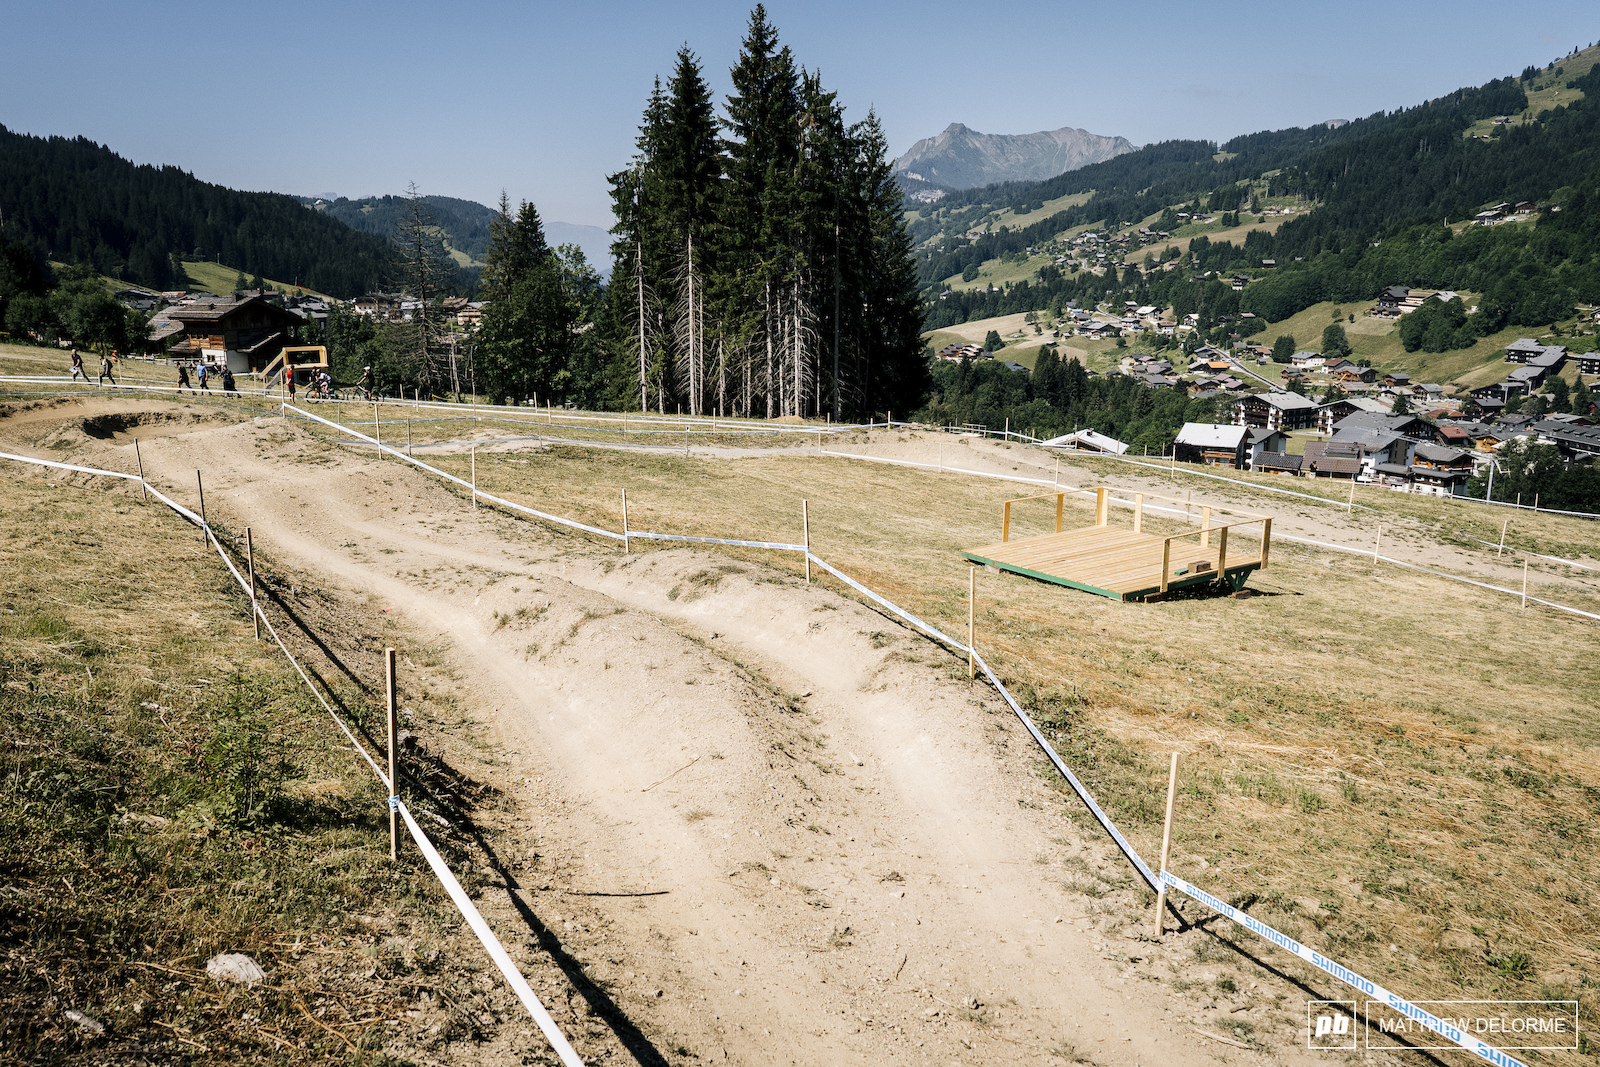 The Crankworx DS course should provide some excitement.